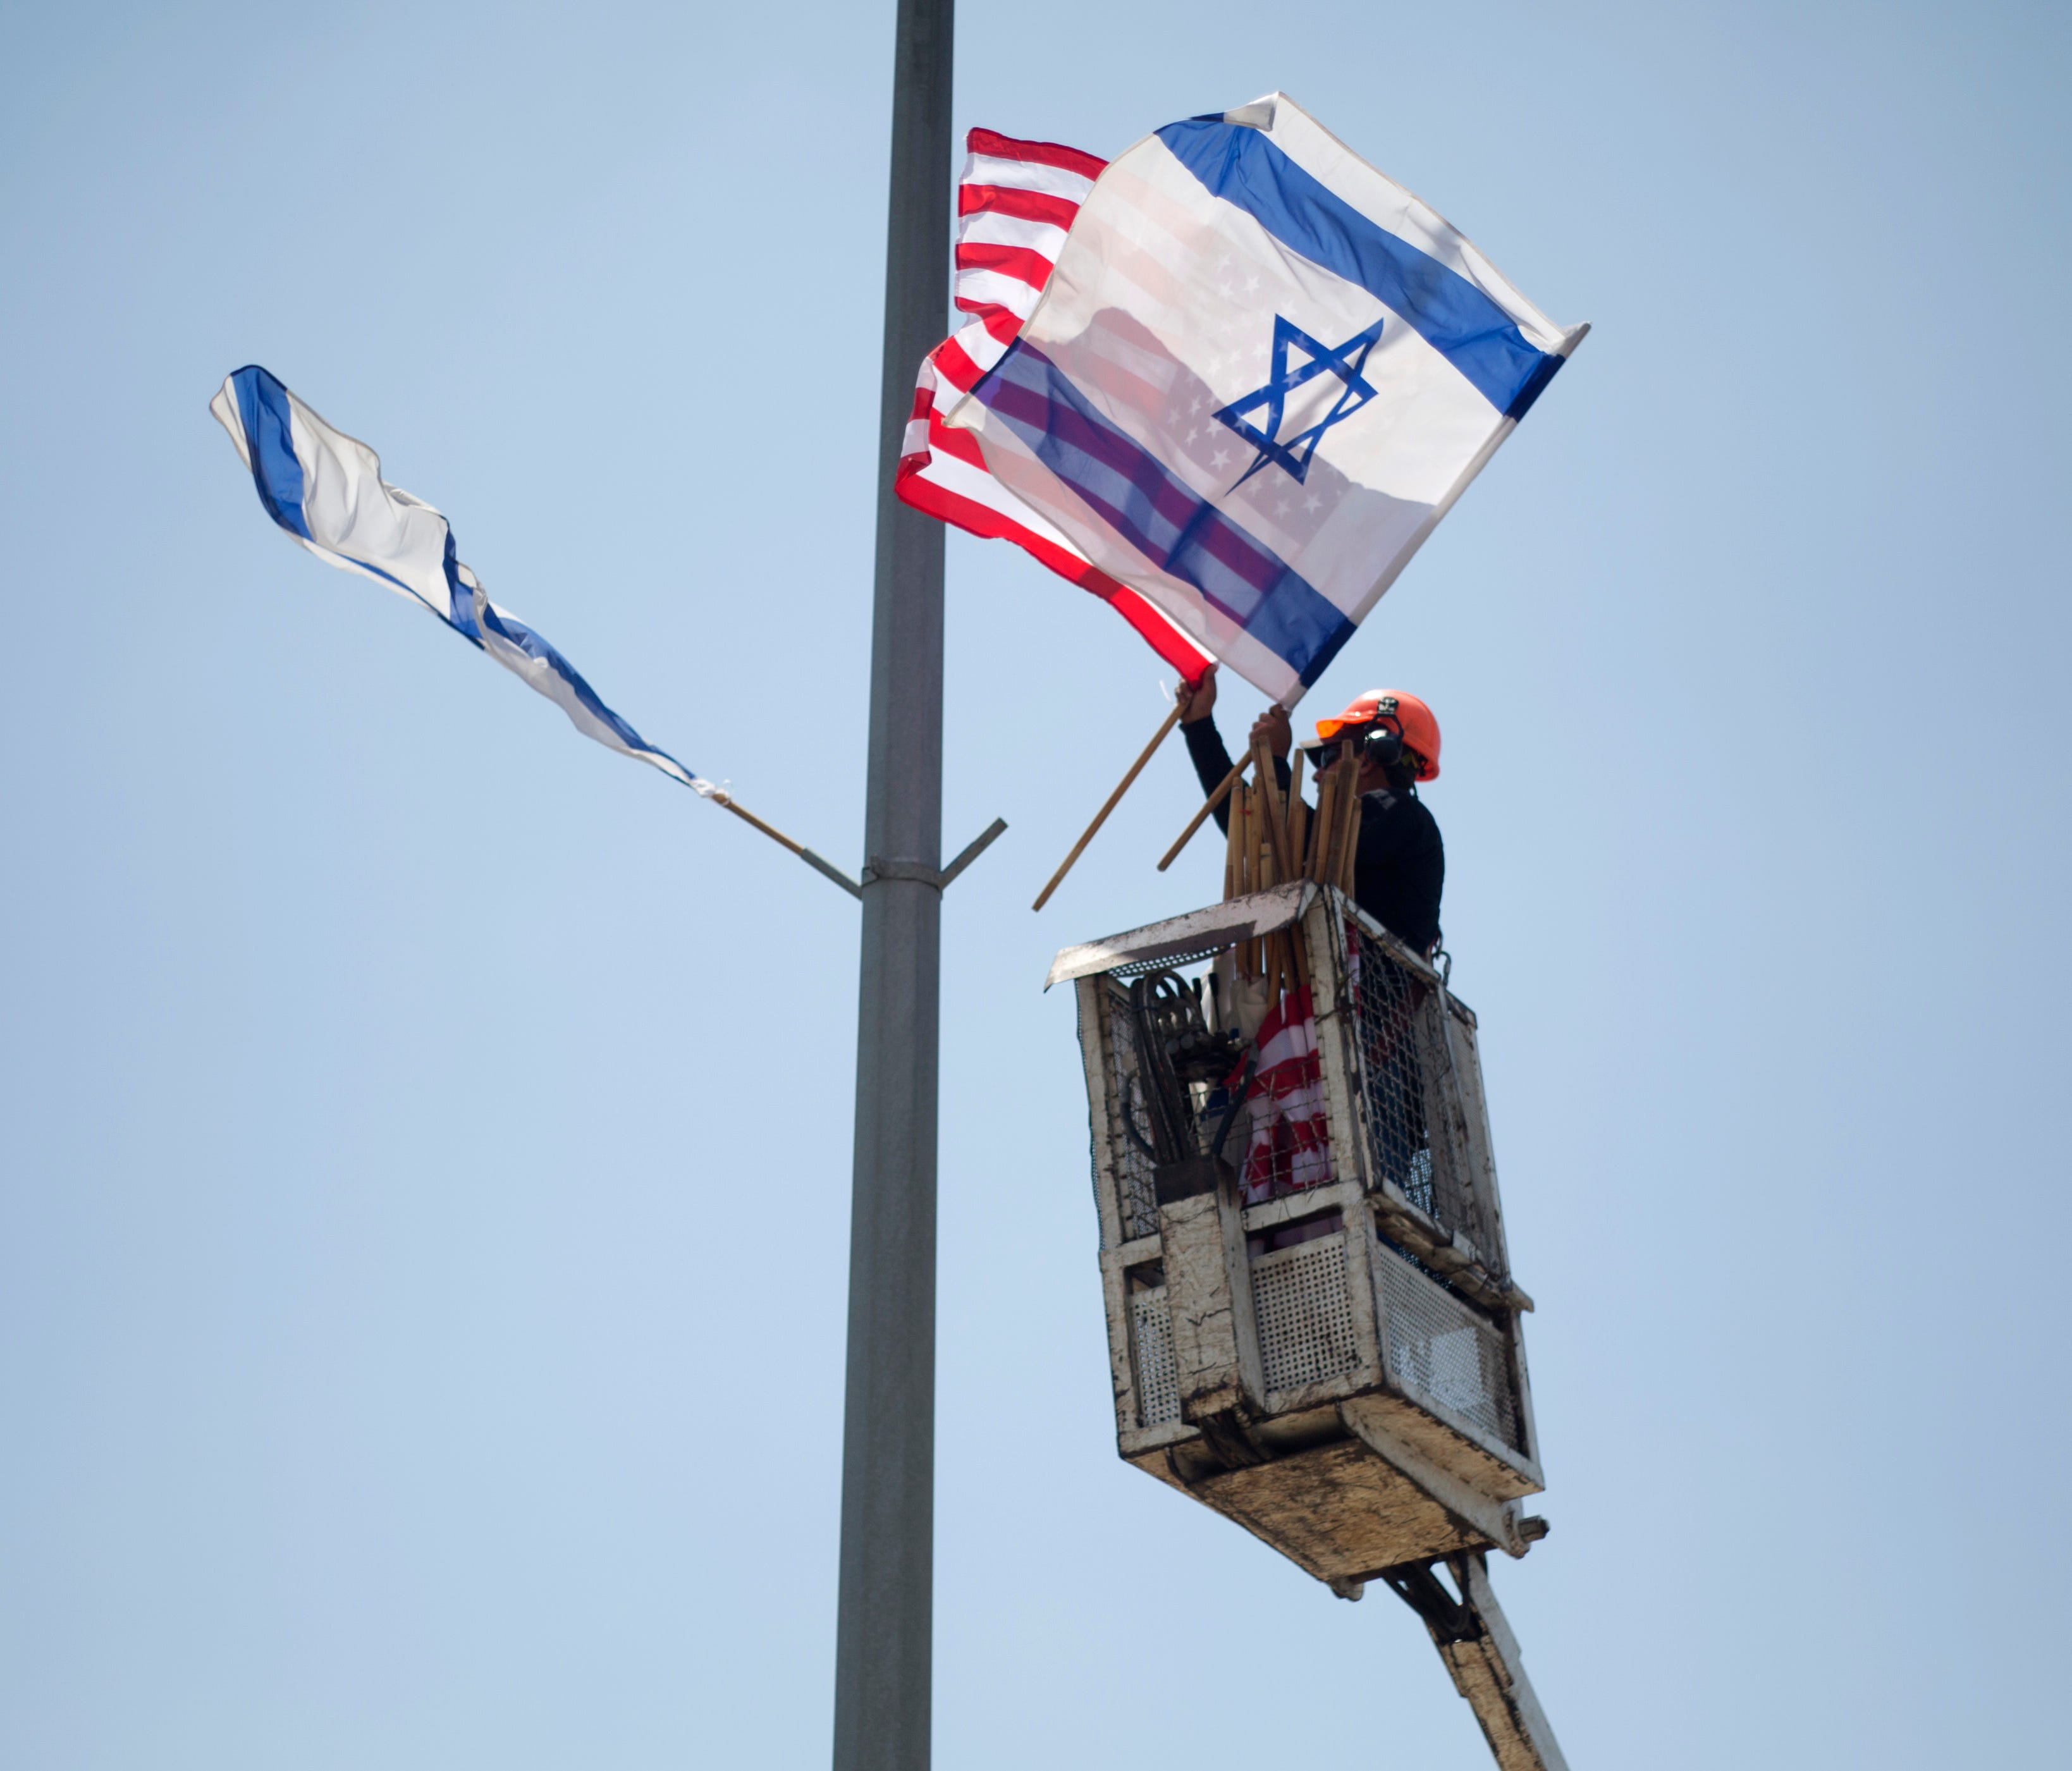 A worker hangs Israeli and U.S. flags on a lamppost along a freeway leading to Jerusalem, days before a planned visit by President Trump,  May 16, 2017.